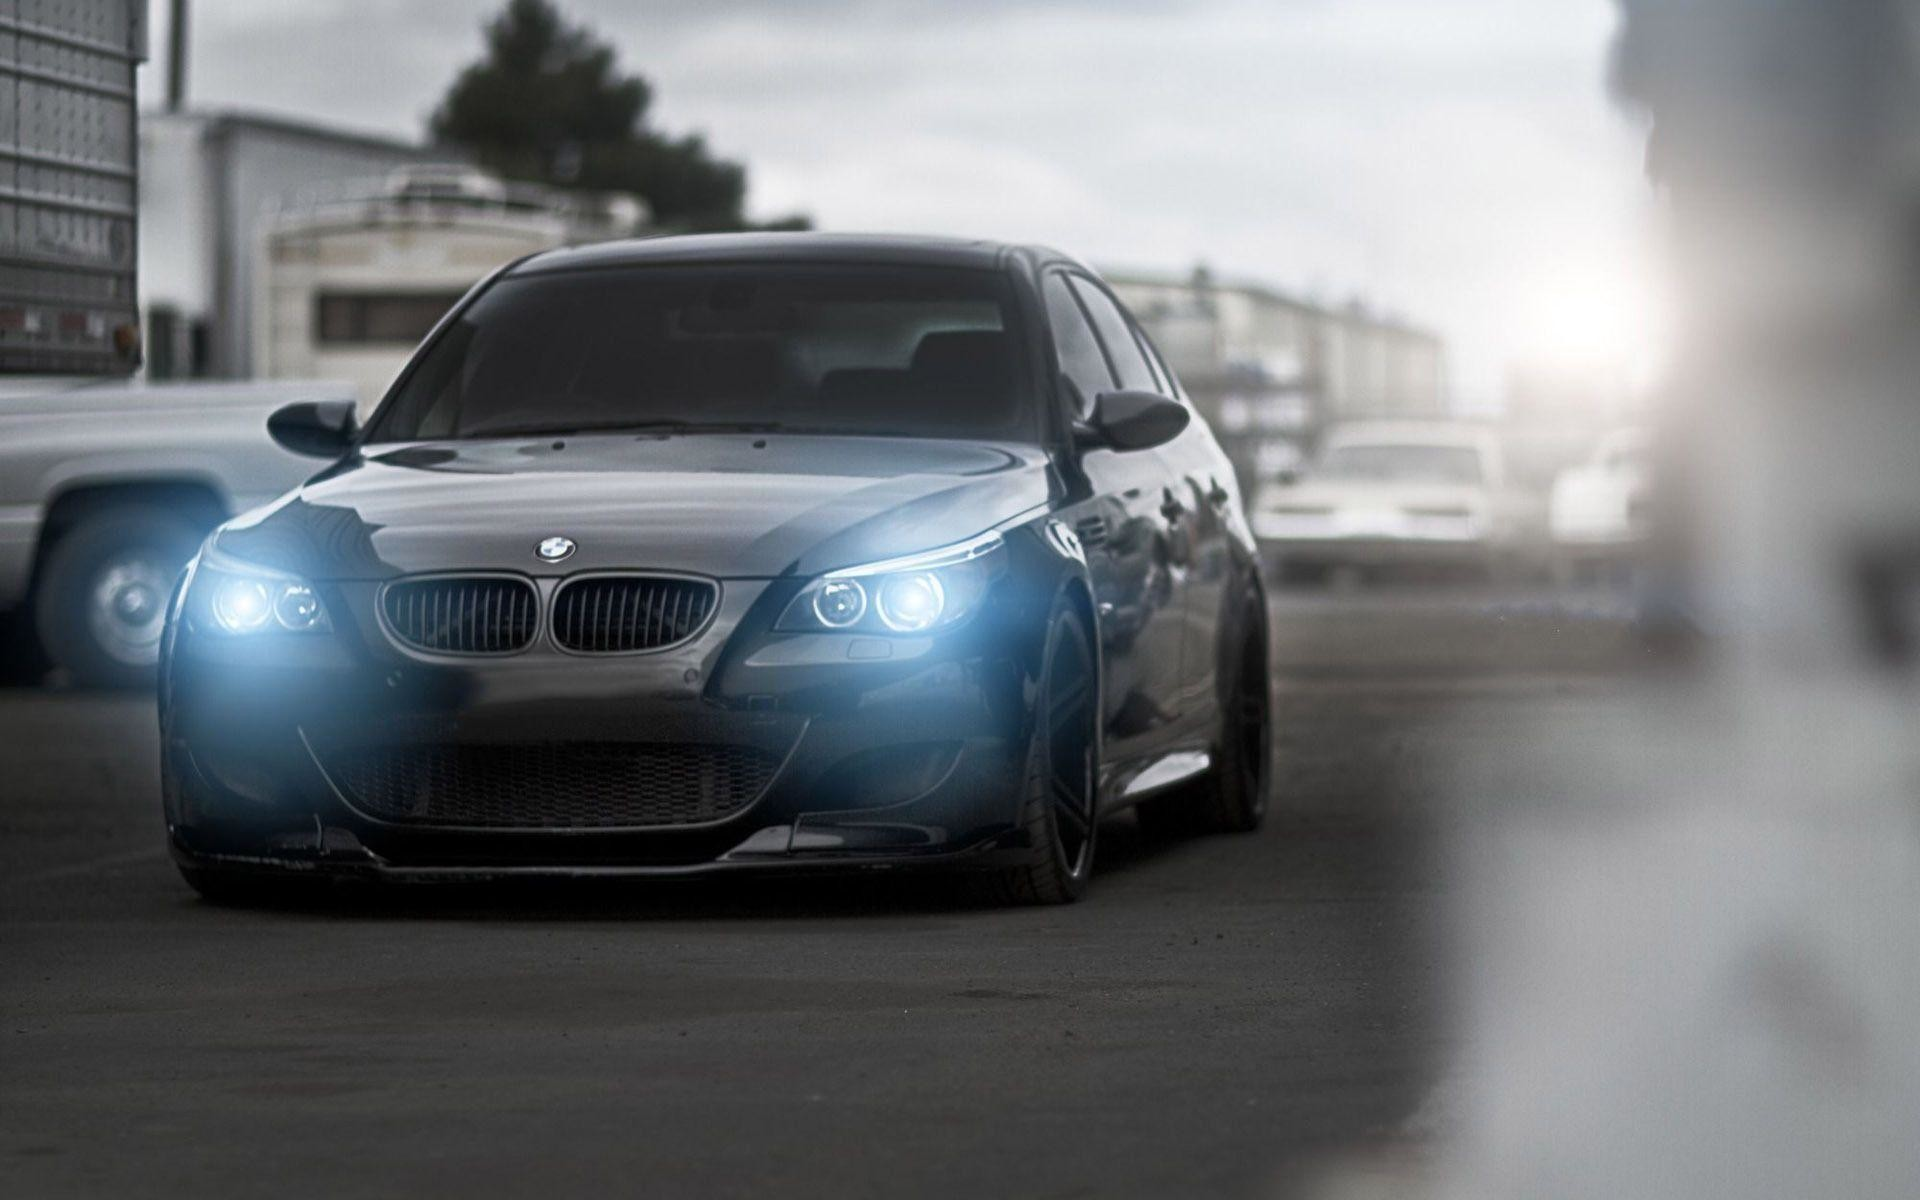 Bmw M5 Wallpapers Bmw M5 E60 Wallpaper Hd 1920x1200 Wallpaper Teahub Io